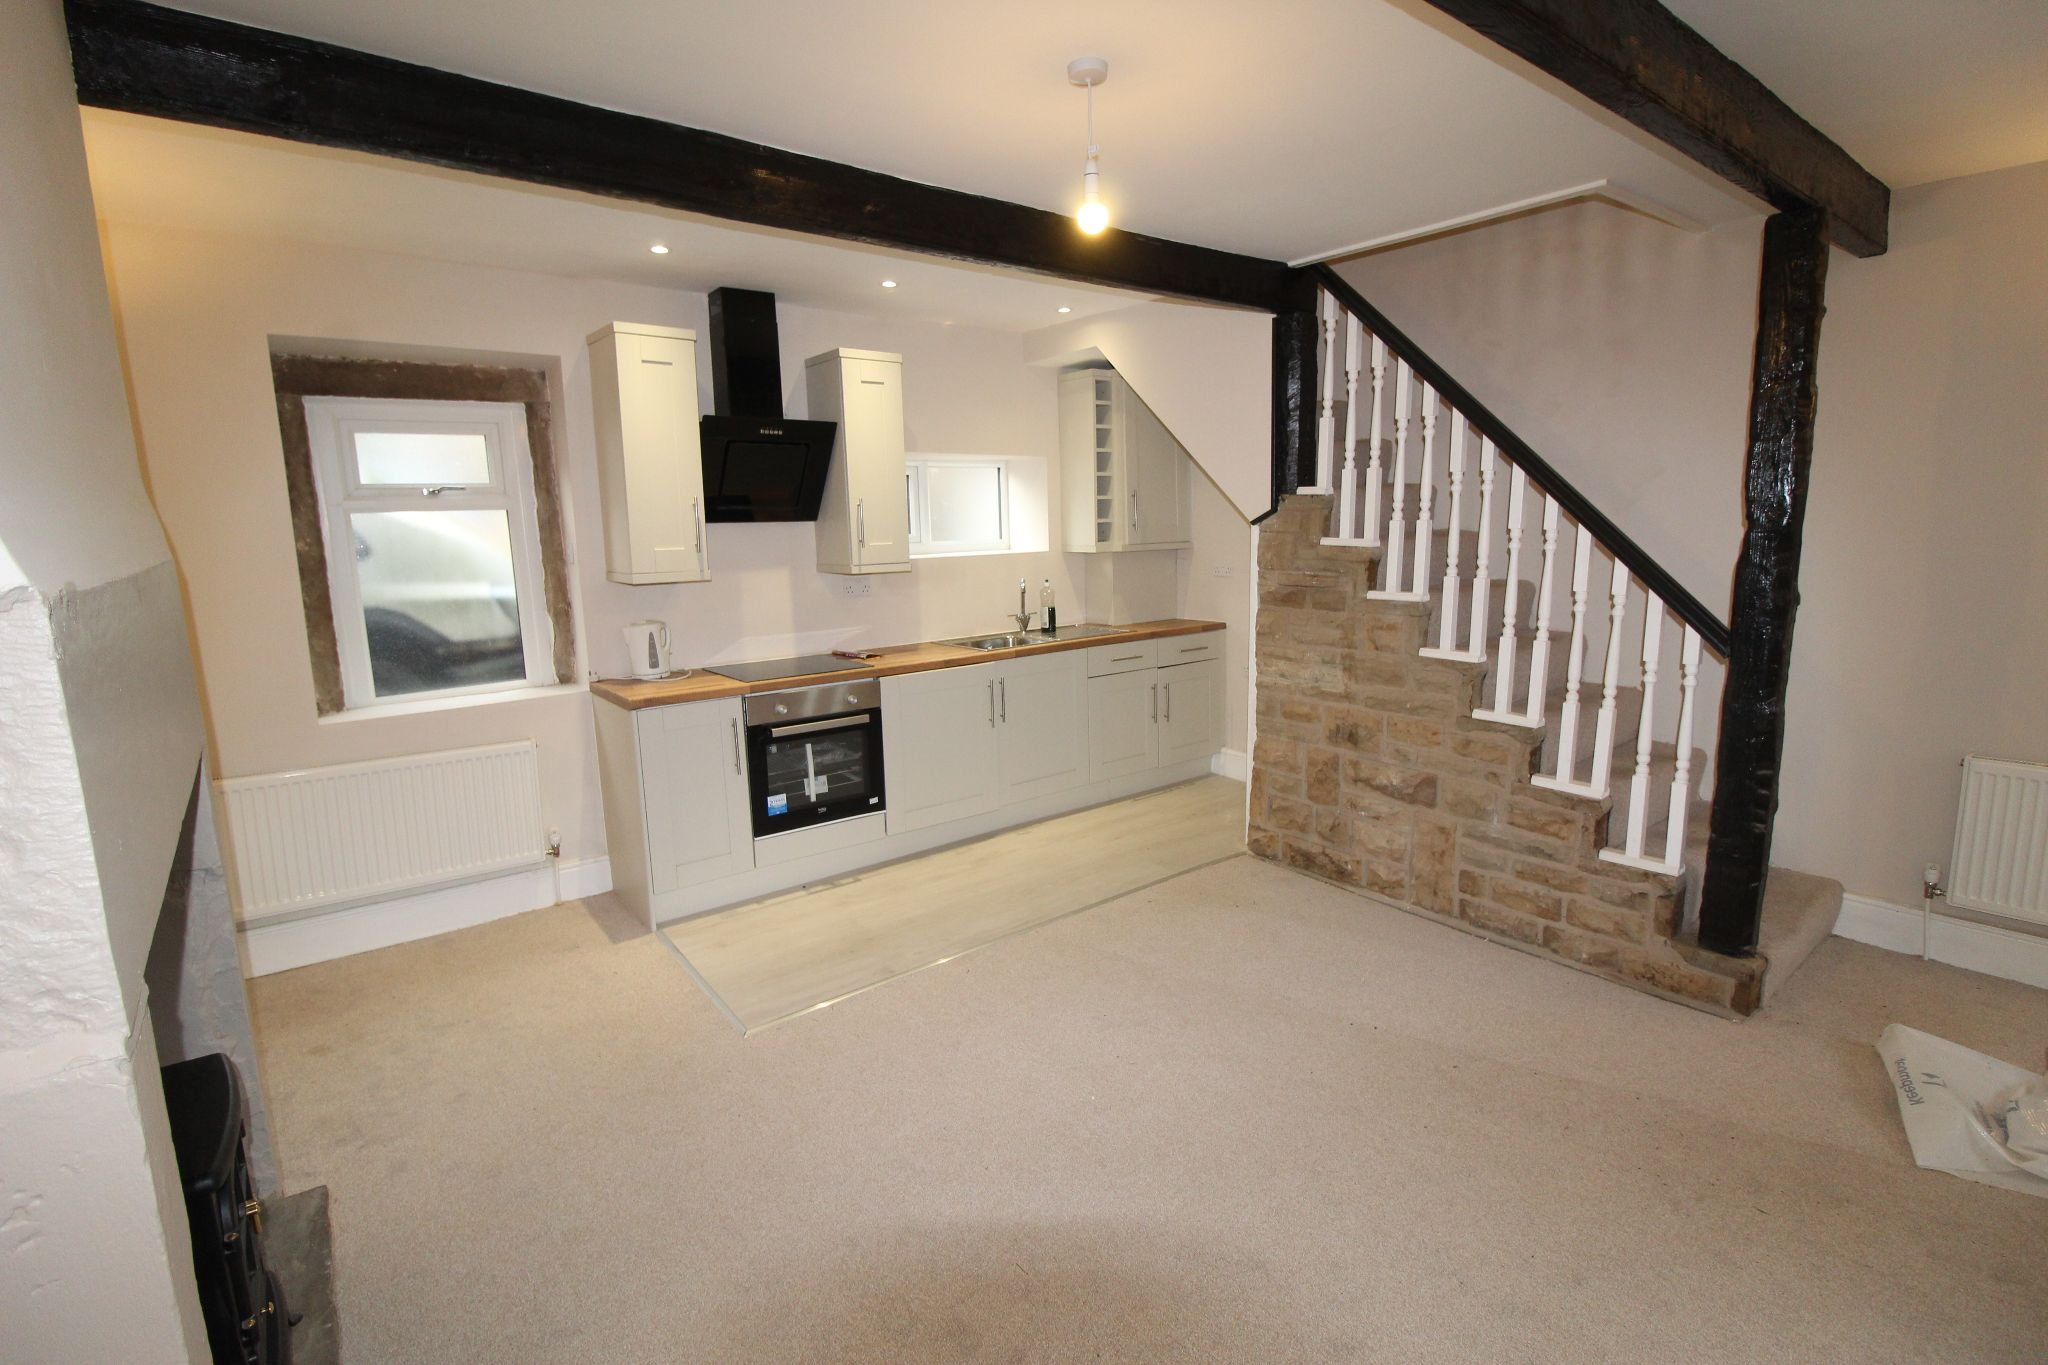 1 bedroom cottage house Let in Bradford - Kitchen and lounge